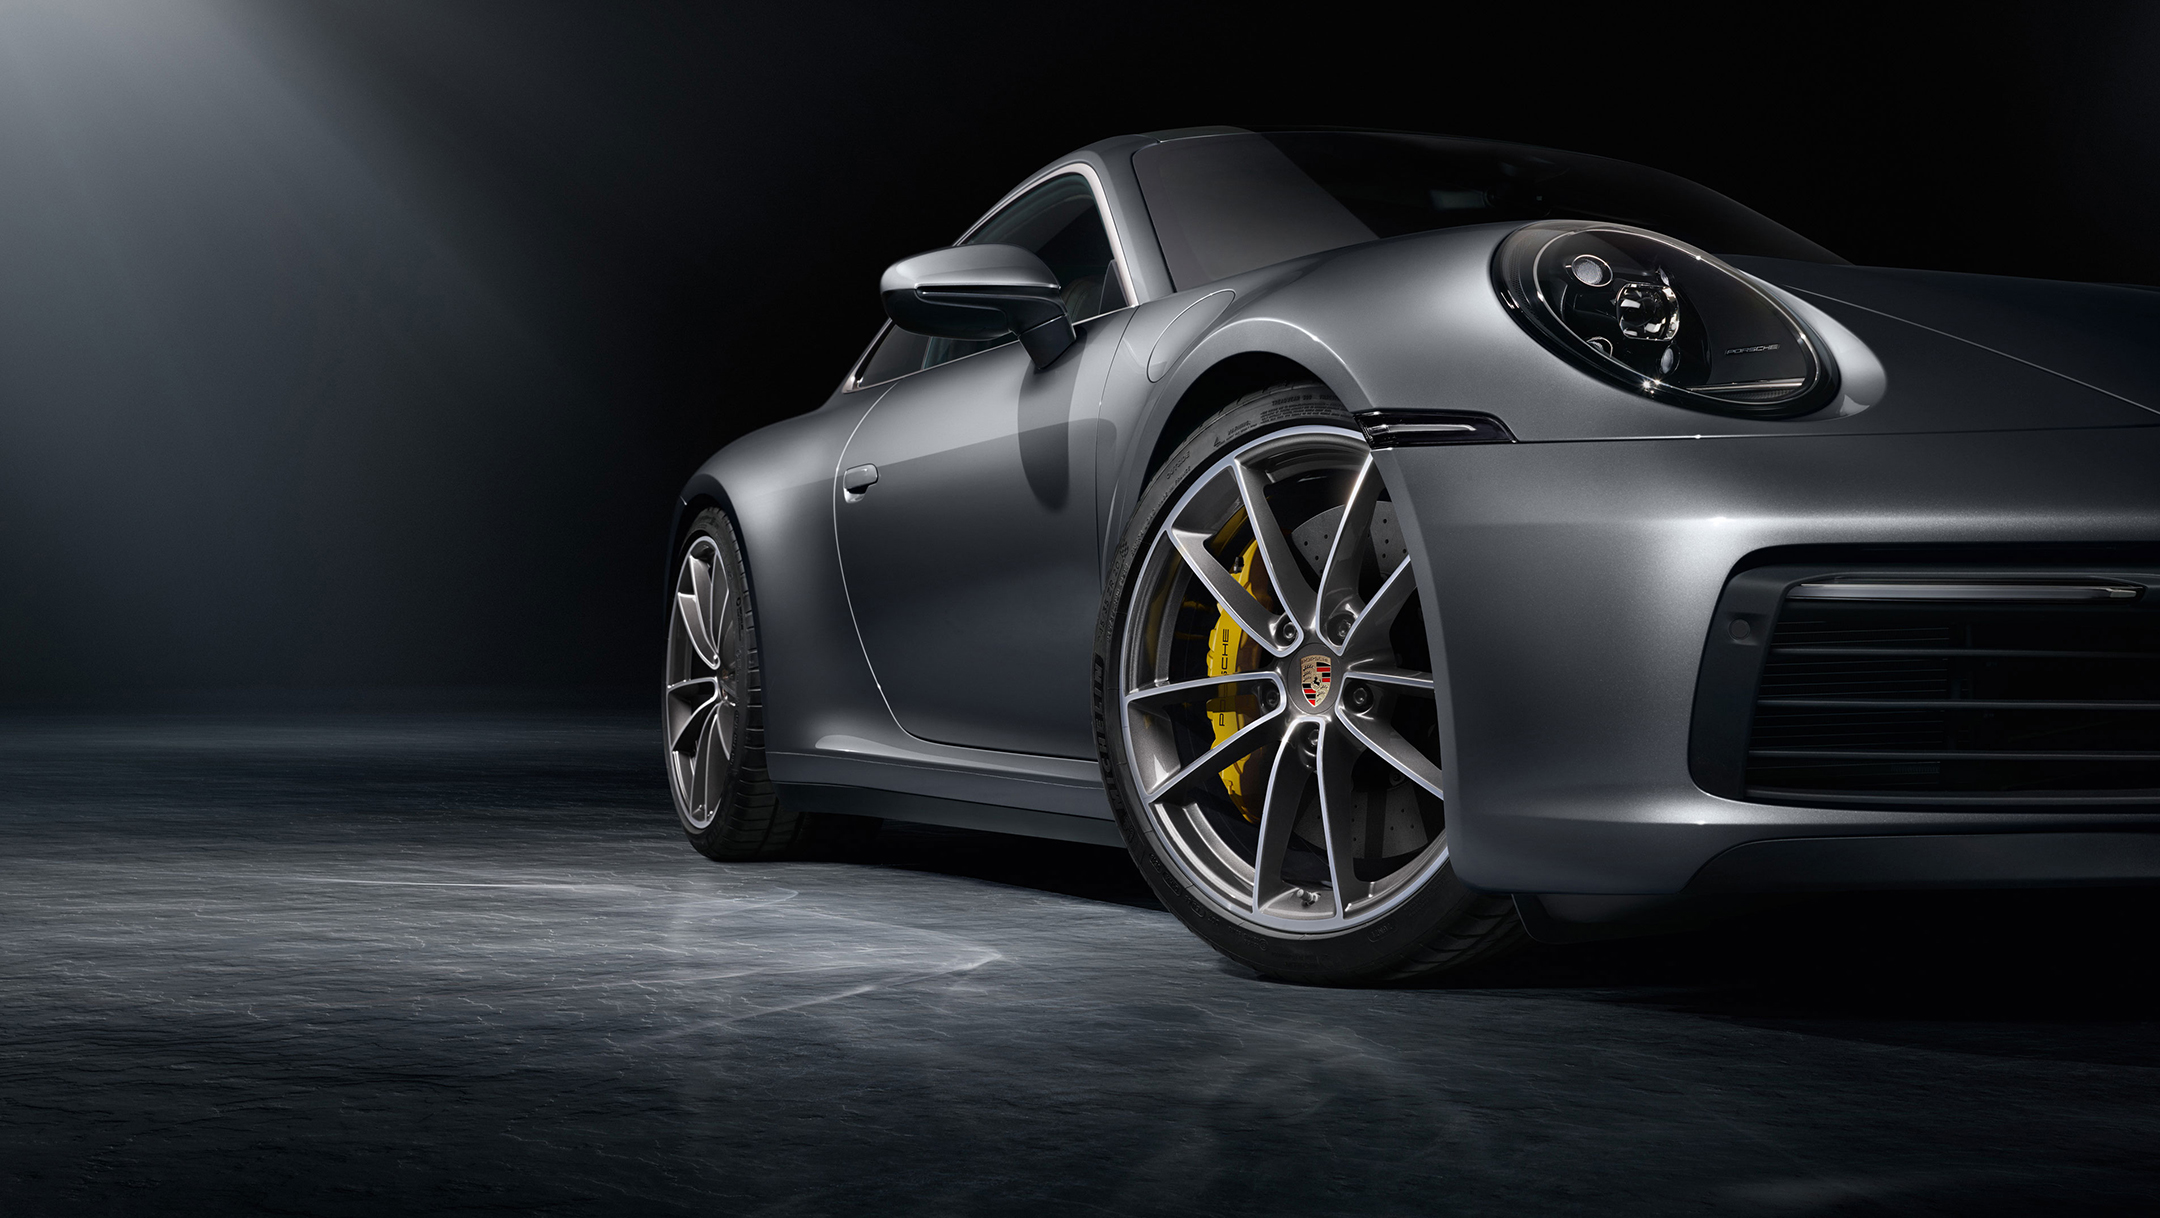 Porsche 911 type 992 Carrera 4S - 2018 - wheel